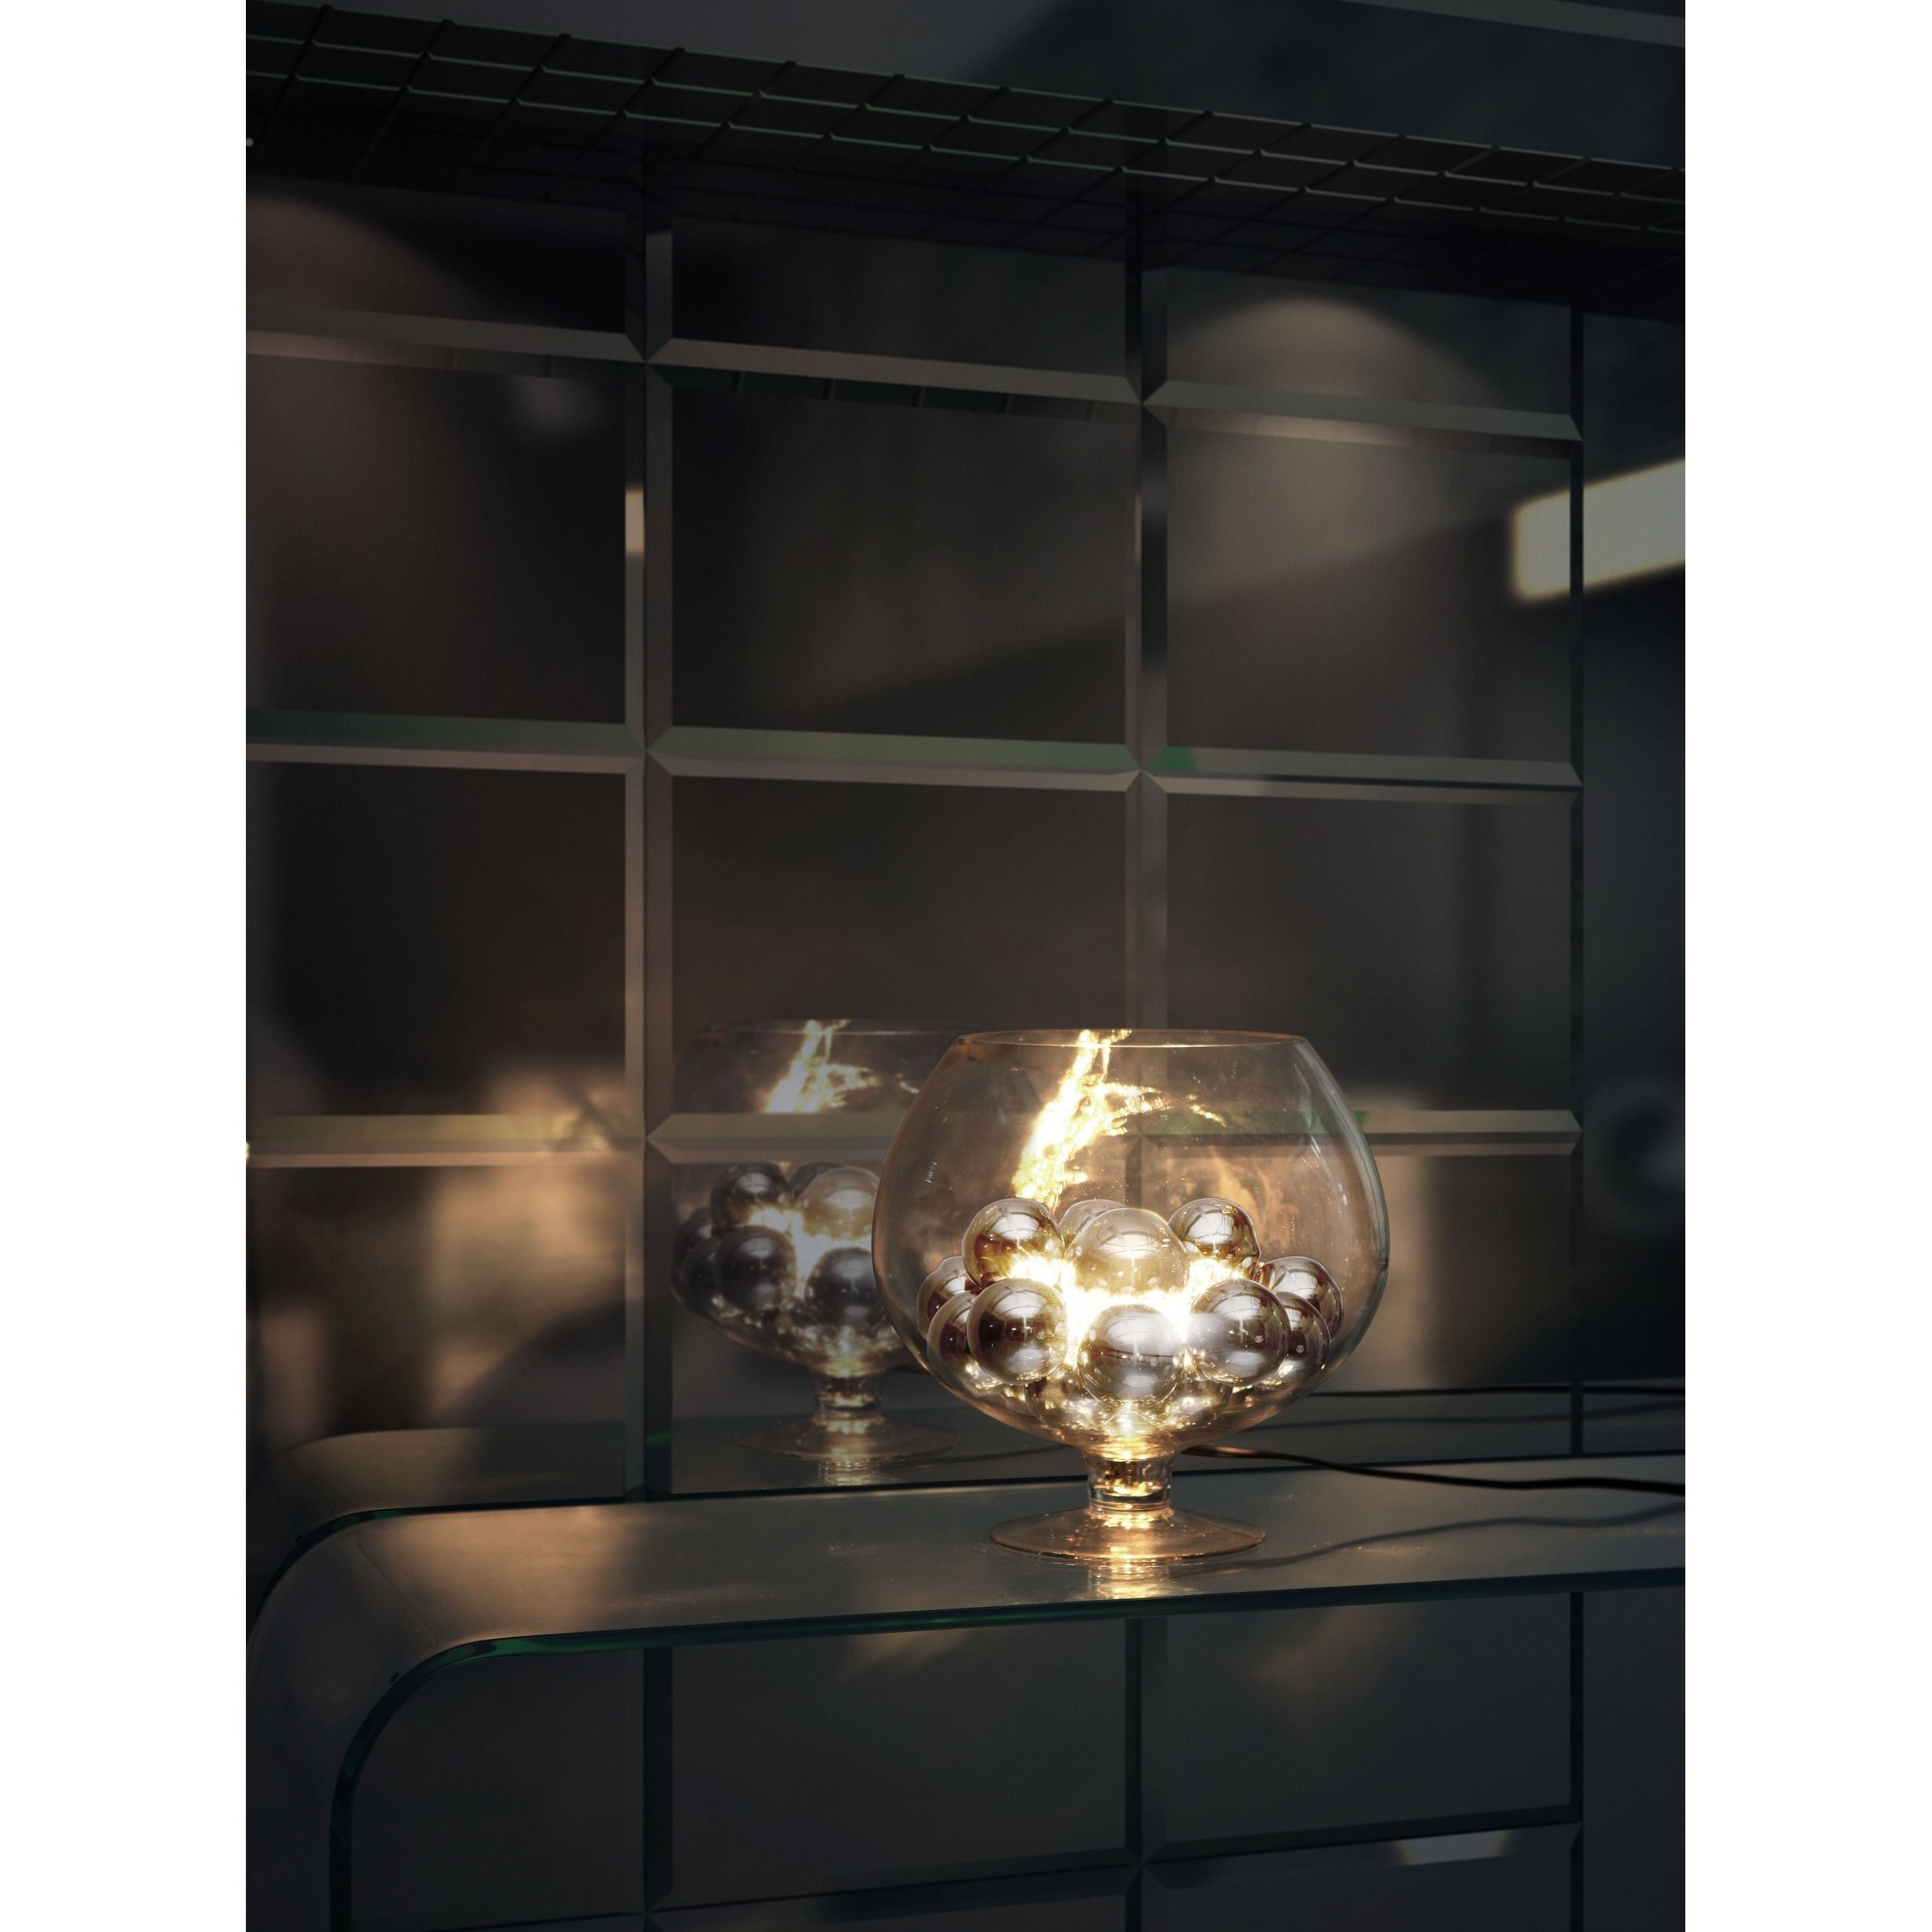 The elegance of chrome orbs enhances the look of this unique table lamp. The Terran lamp shines and reflects off of the chrome spheres creating a beautiful glow for any decor setting.